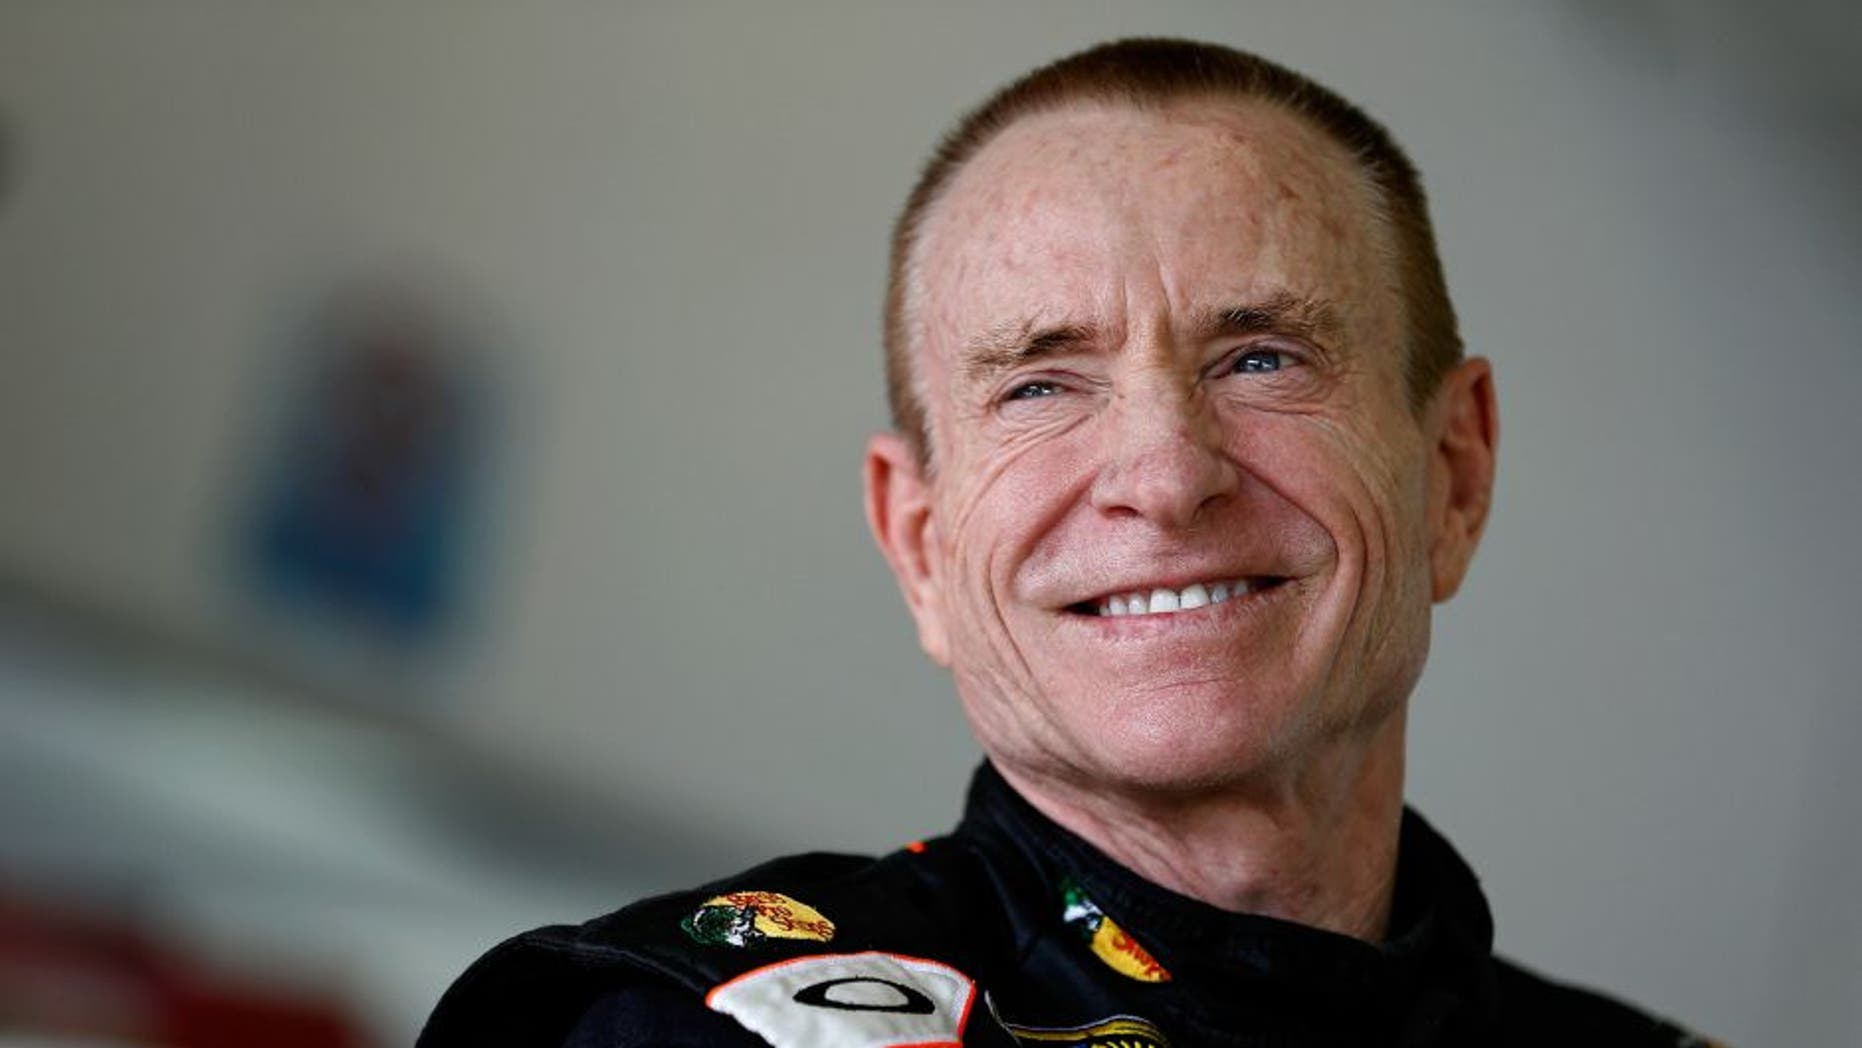 HOMESTEAD, FL - NOVEMBER 16: Mark Martin, driver of the #14 Bass Pro Shops / Mobil 1 Chevrolet, stands in the garage during practice for the NASCAR Sprint Cup Series Ford EcoBoost 400 at Homestead-Miami Speedway on November 16, 2013 in Homestead, Florida. (Photo by Jeff Zelevansky/NASCAR via Getty Images)